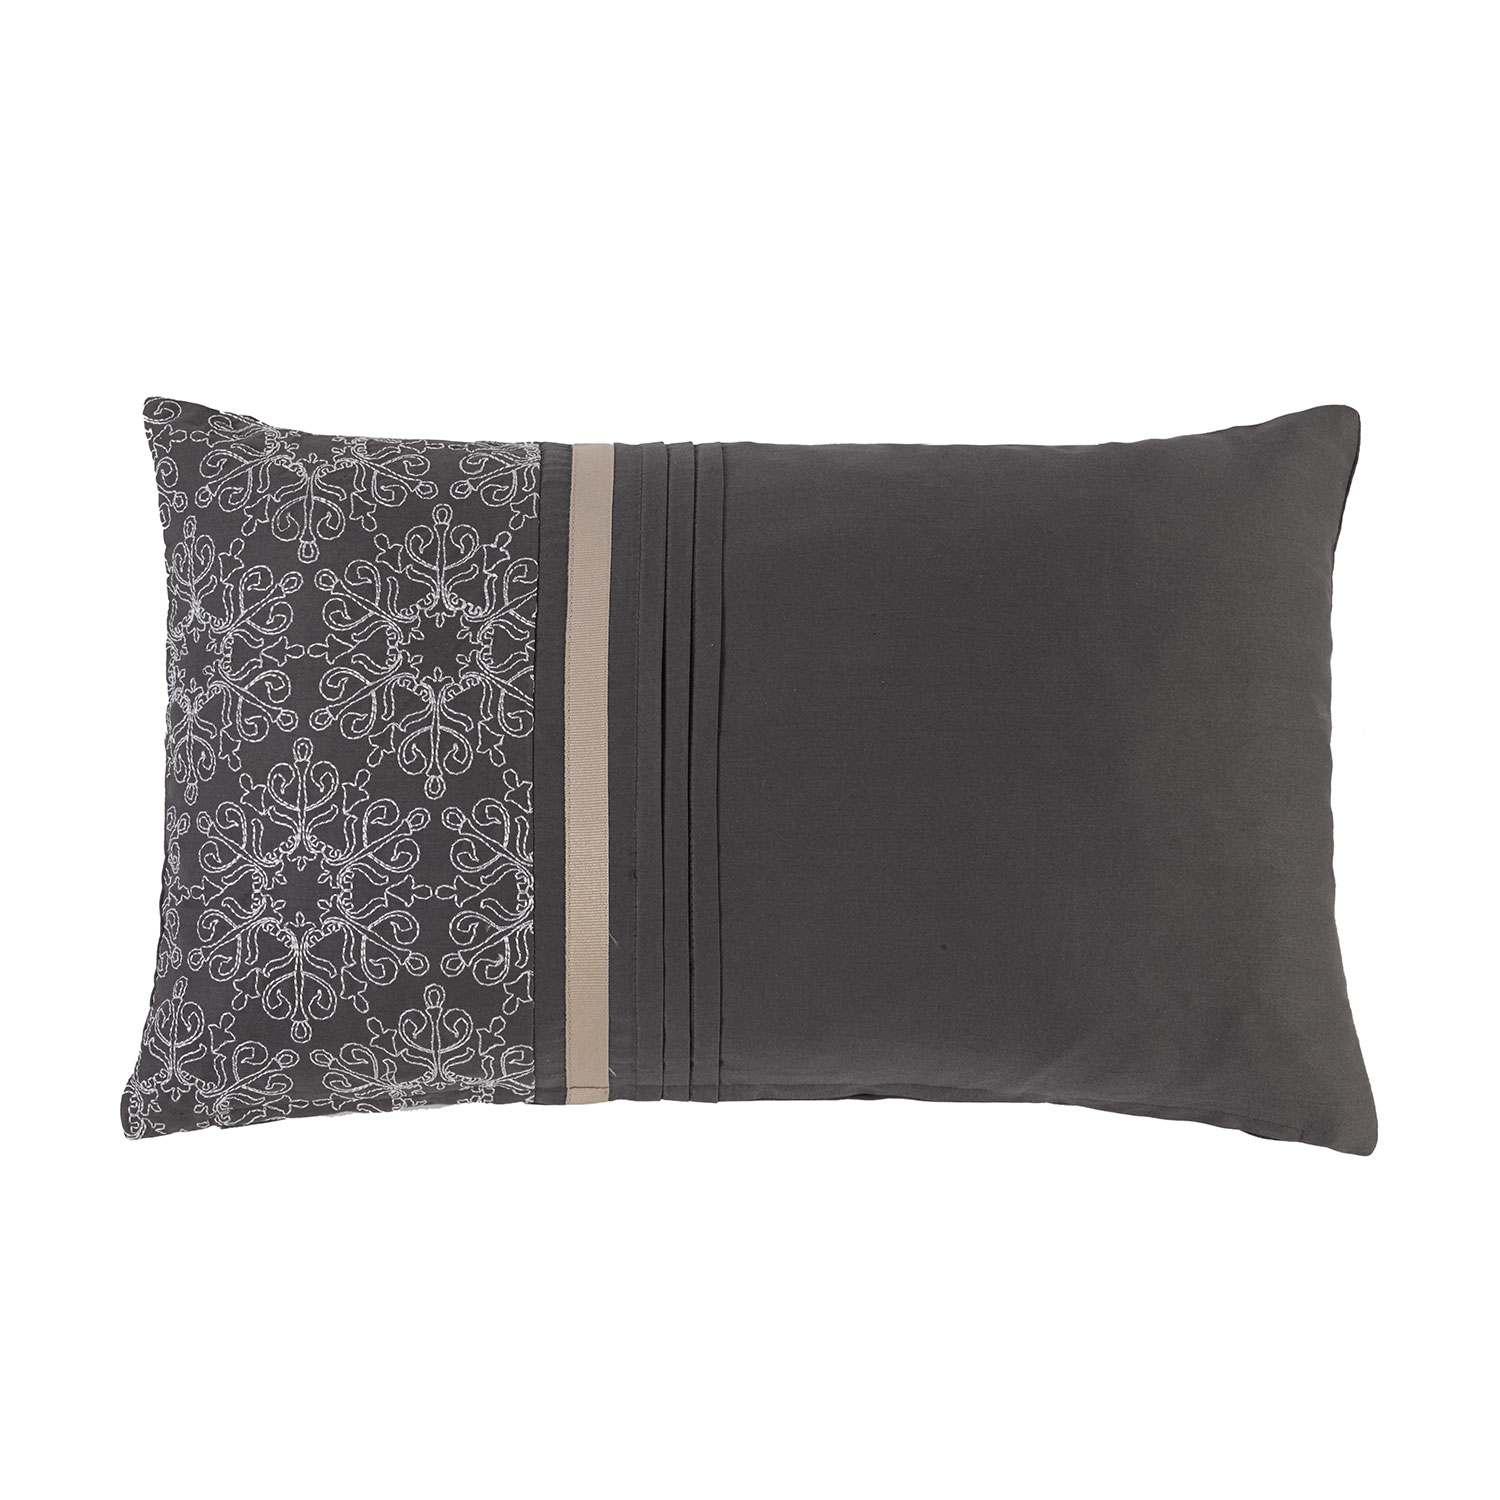 Stockists of Ashford Silver Luxury Filled Boudoir Cushion